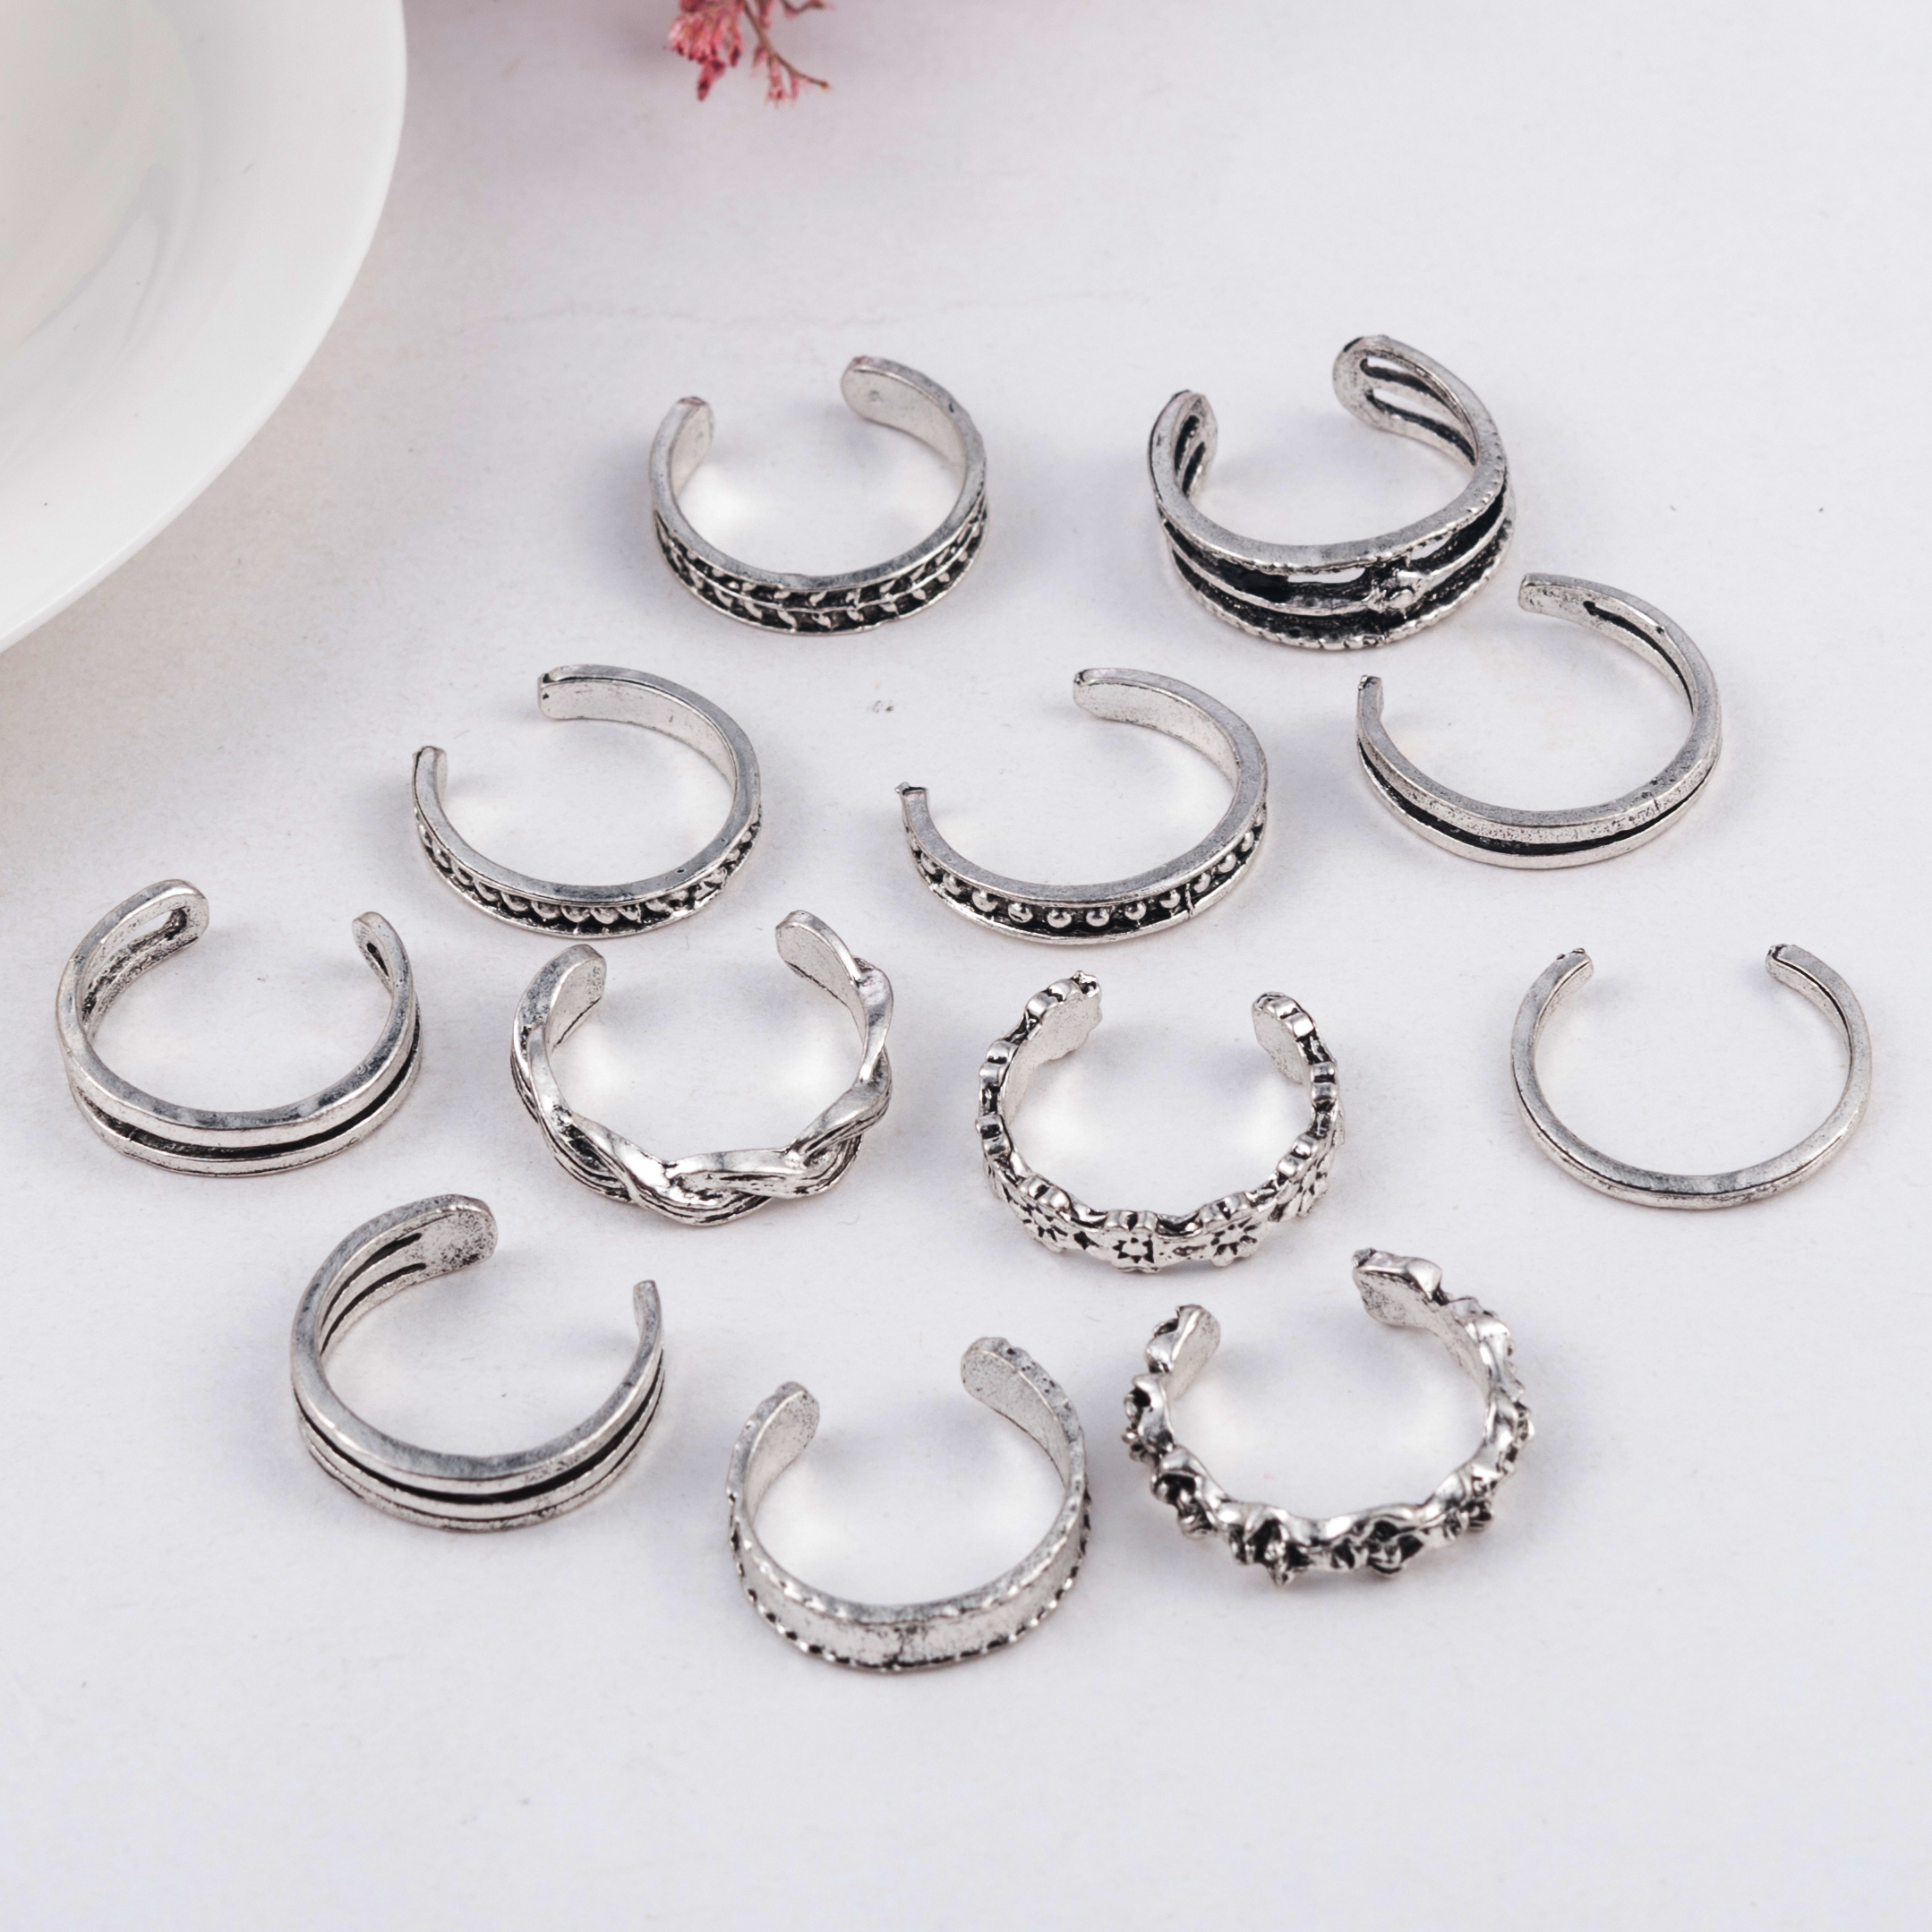 12PCs/set Women Lady Unique Adjustable Opening Finger Ring Retro Carved Toe Ring Foot Beach Foot Jewelry anillos mujer 4